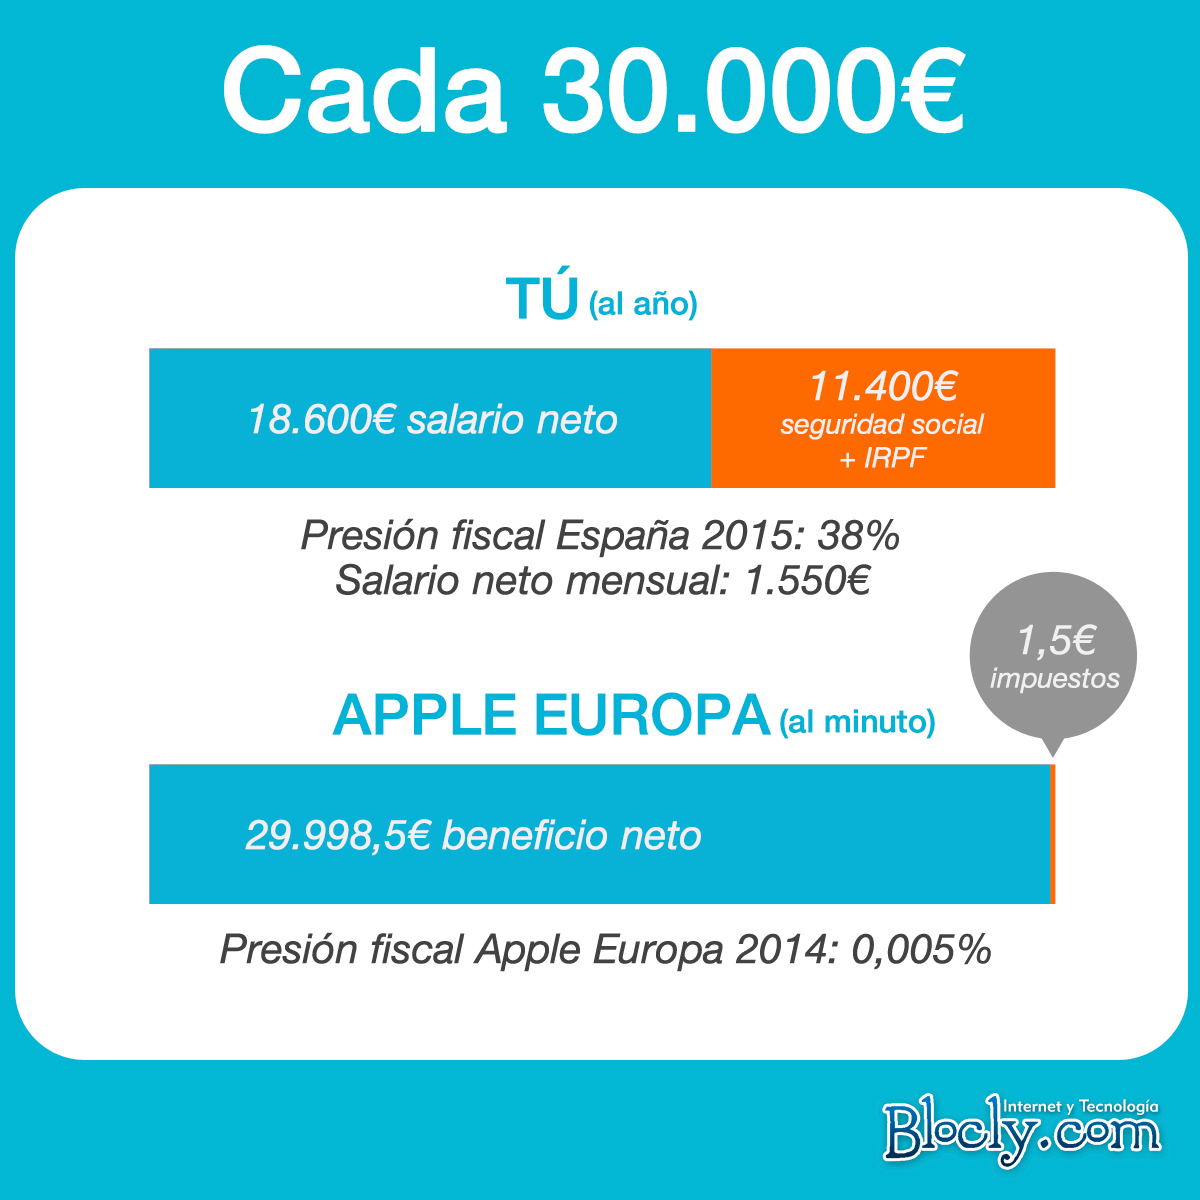 Evasión impuestos Apple en Europa